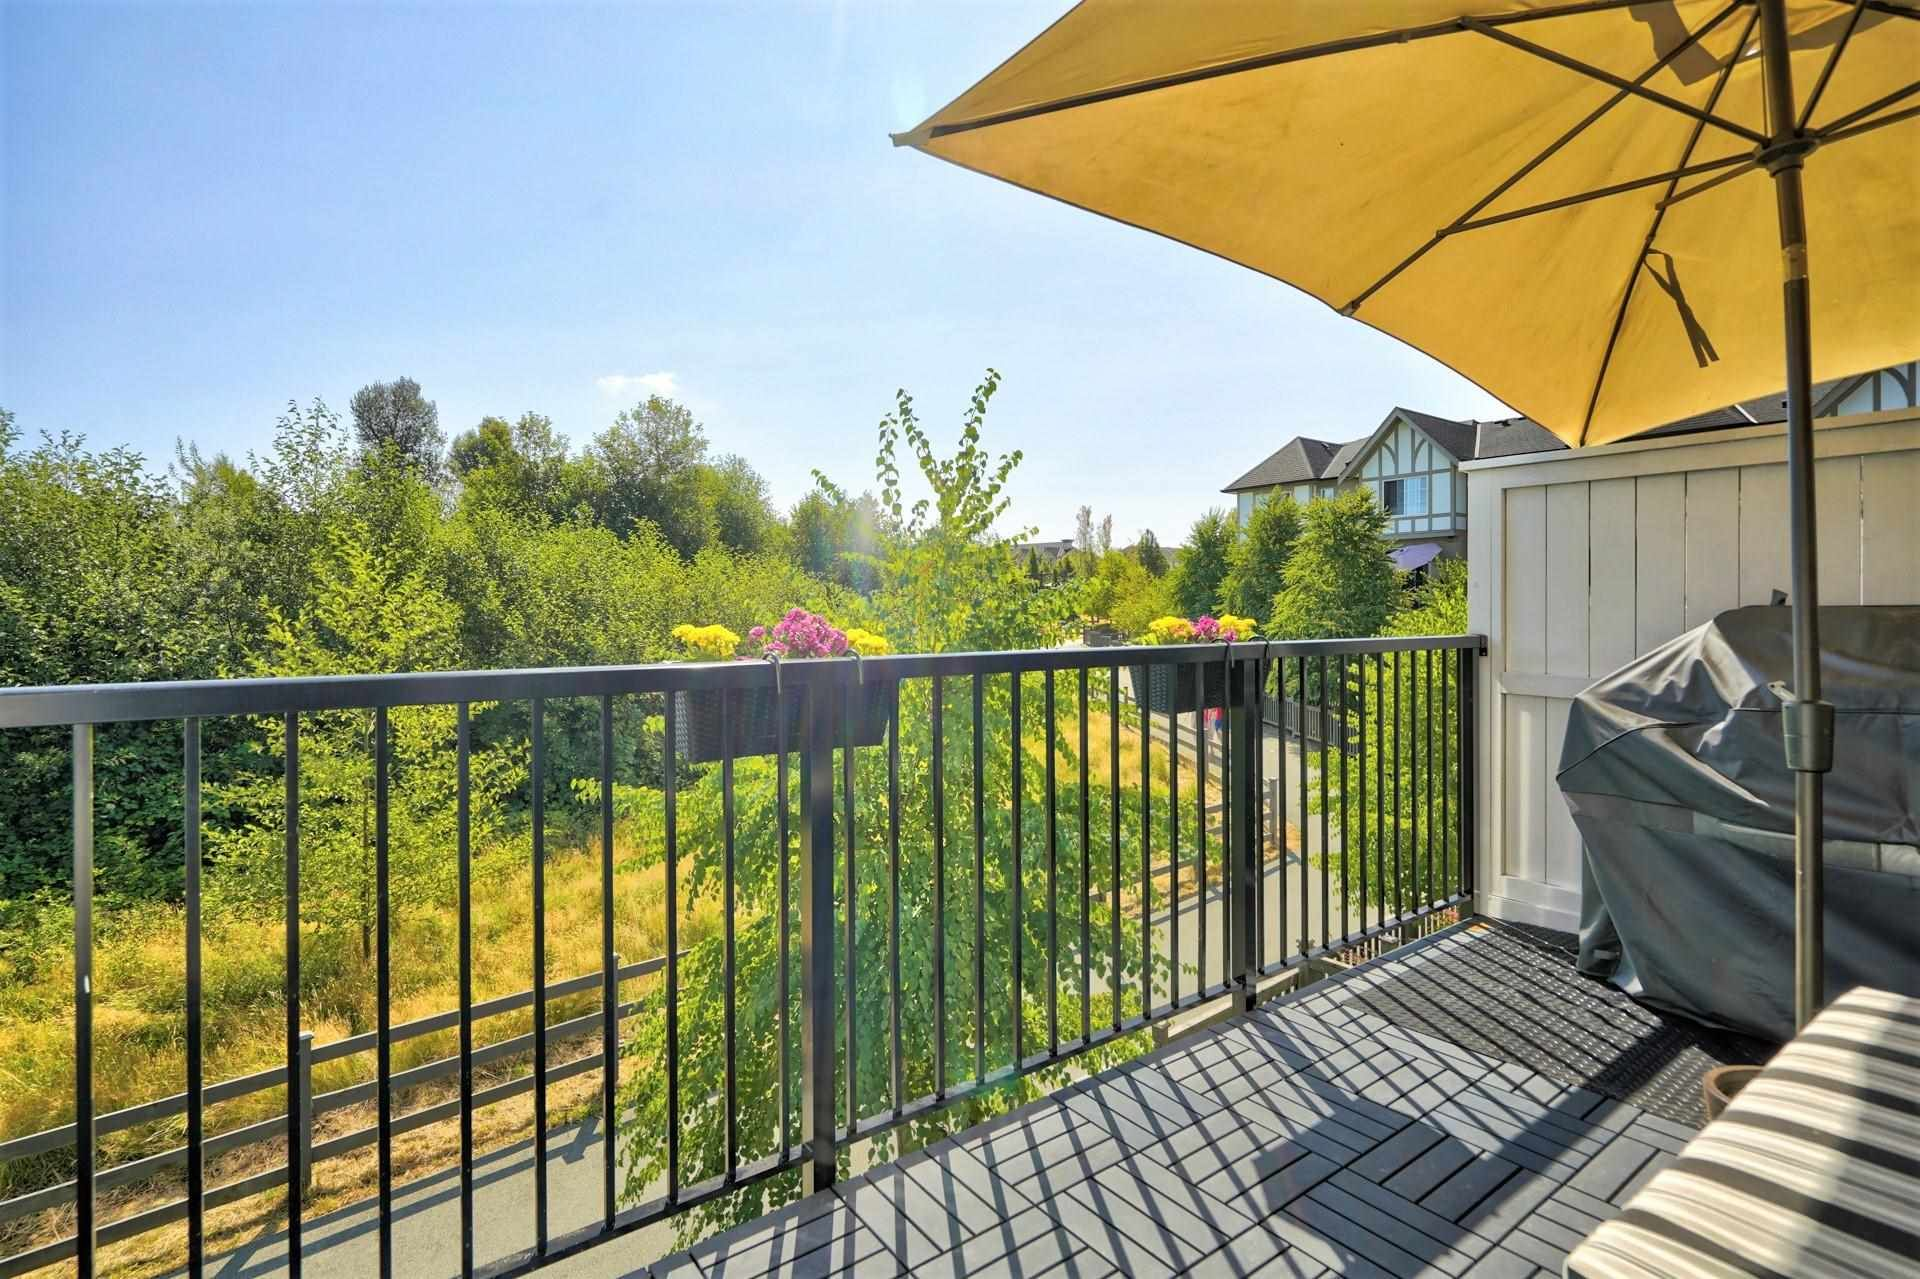 """Main Photo: 44 30989 WESTRIDGE Place in Abbotsford: Abbotsford West Townhouse for sale in """"BRIGHTON"""" : MLS®# R2605566"""